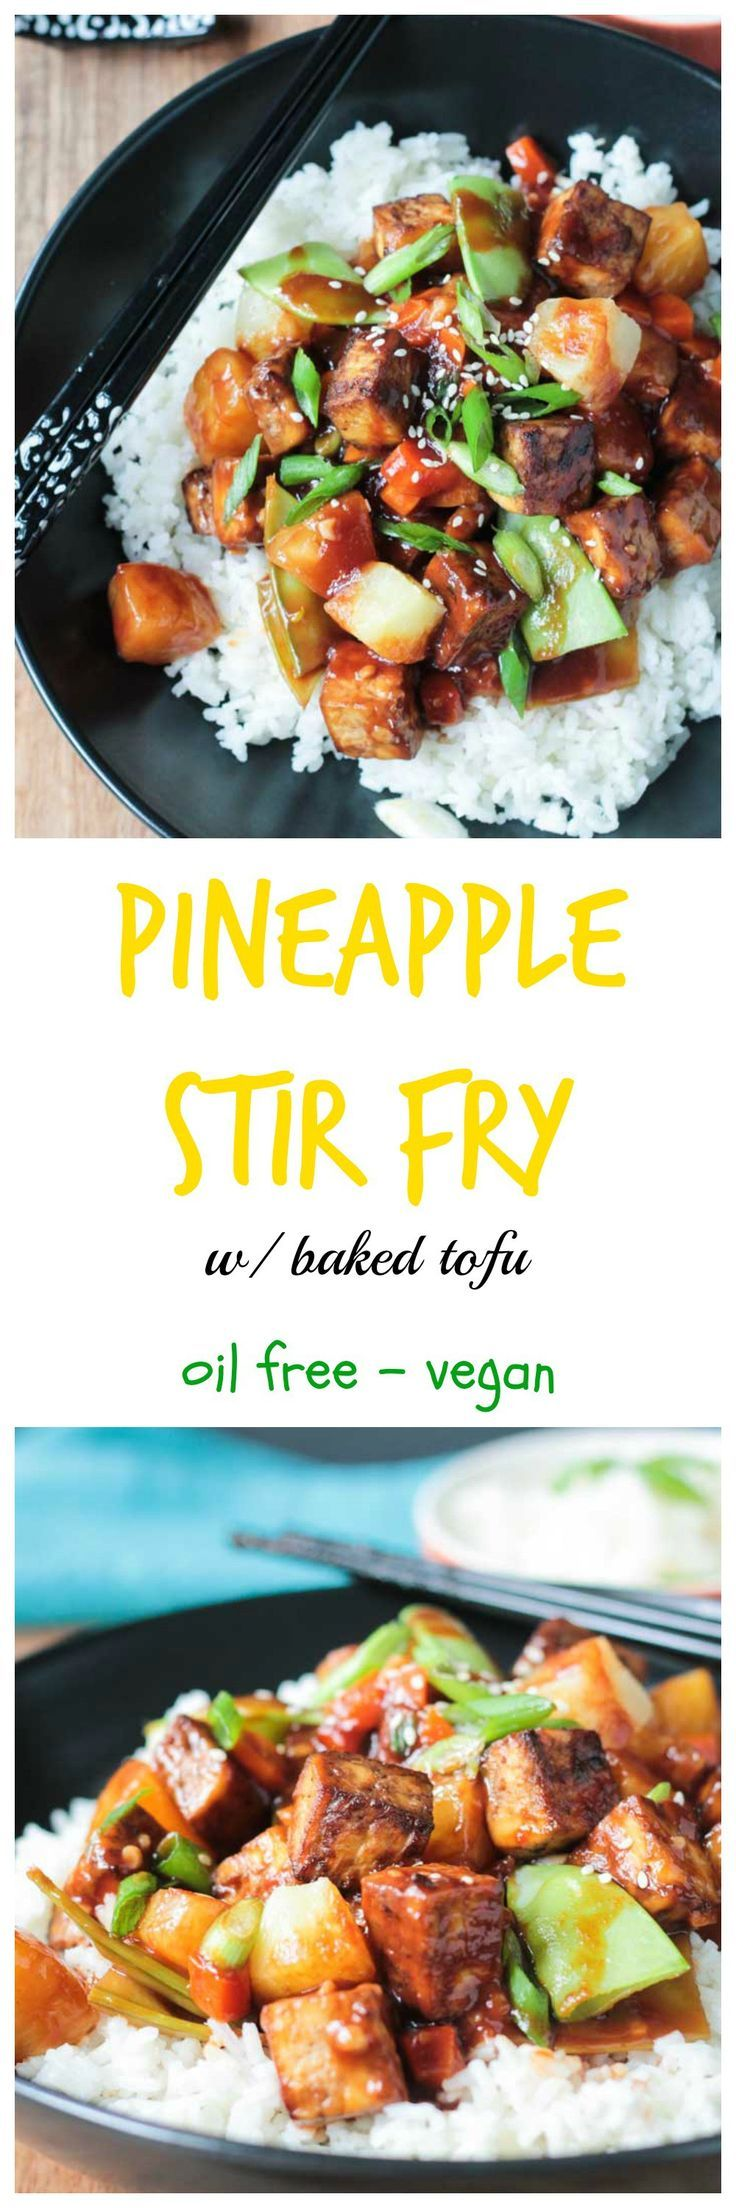 Pineapple Stir Fry w/ Baked Tofu - crisp veggies, sweet pineapple, chewy baked tofu - all smothered in a sweet, salty, sticky stir fry sauce. Dinner in under an hour! Dairy free, vegan and a gluten free option. #stirfry #pineapple #tofu #vegan #glutenfree #dinner